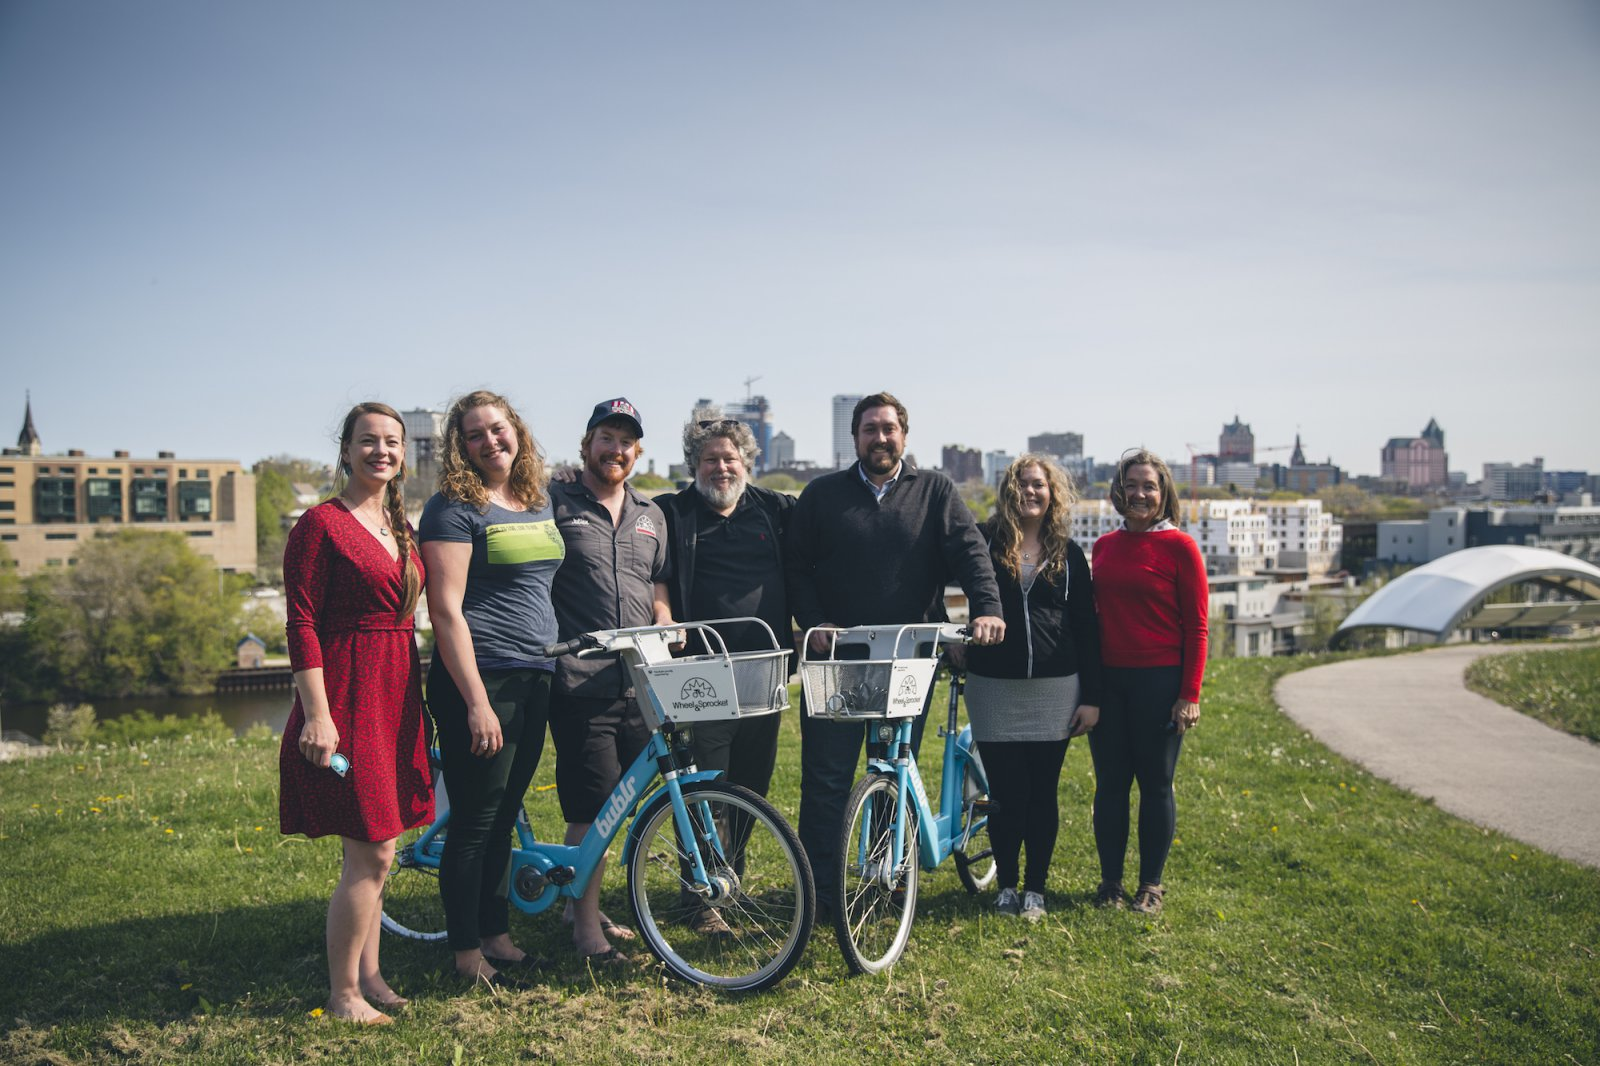 The Wheel & Sprocket team and Kegel Family. Photo courtesy of Bublr Bikes.